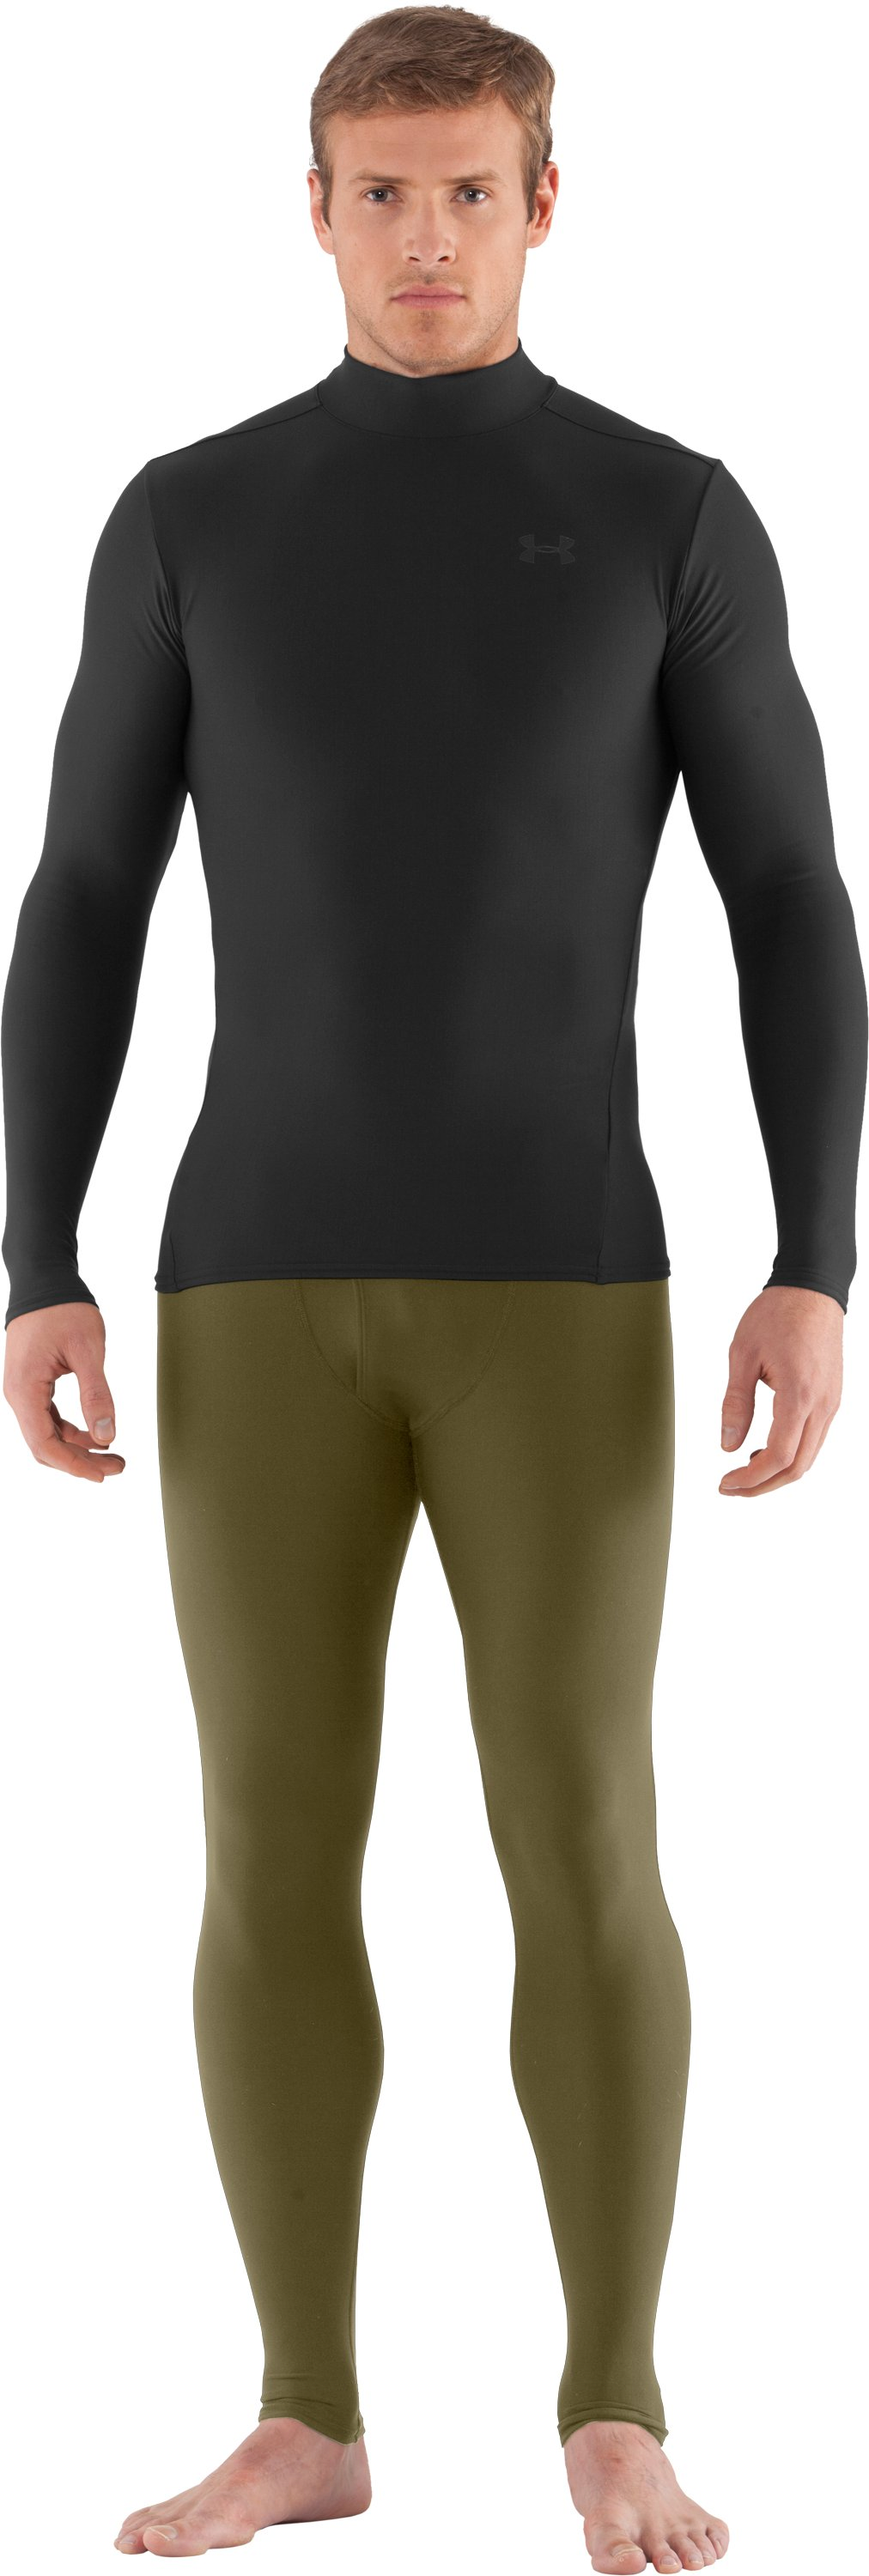 Men's Tactical ColdGear® Compression Leggings, Marine OD Green, zoomed image